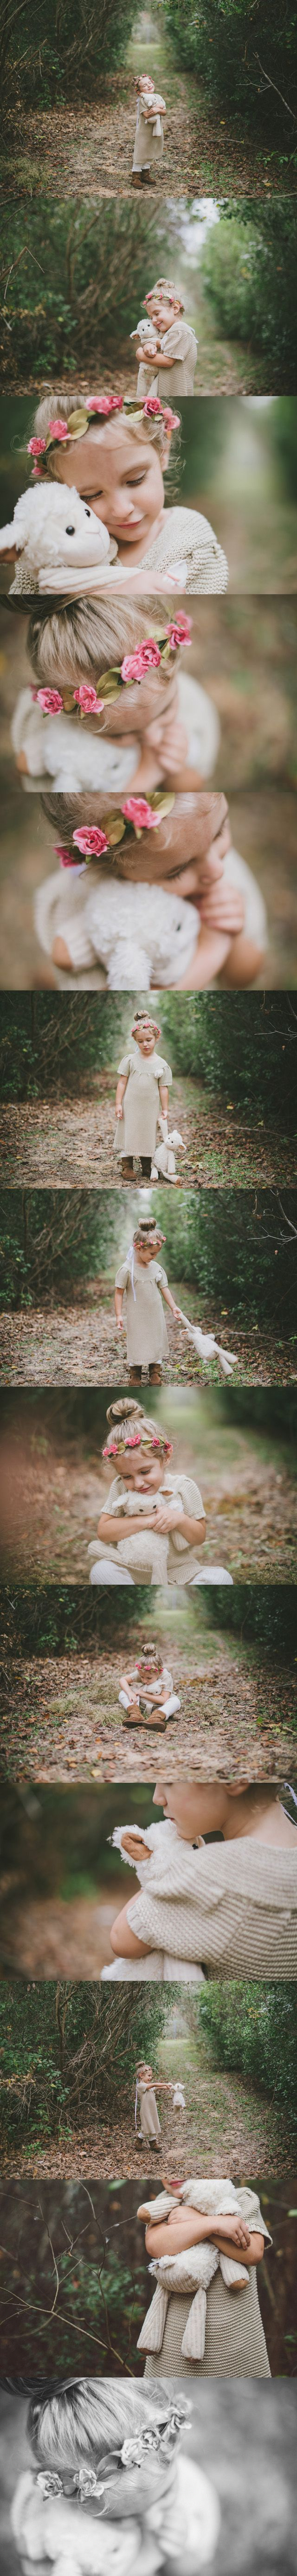 'In one month, she will be four. I am celebrating these last few weeks of her being just three. This shoot is just that, this little one being entirely herself.